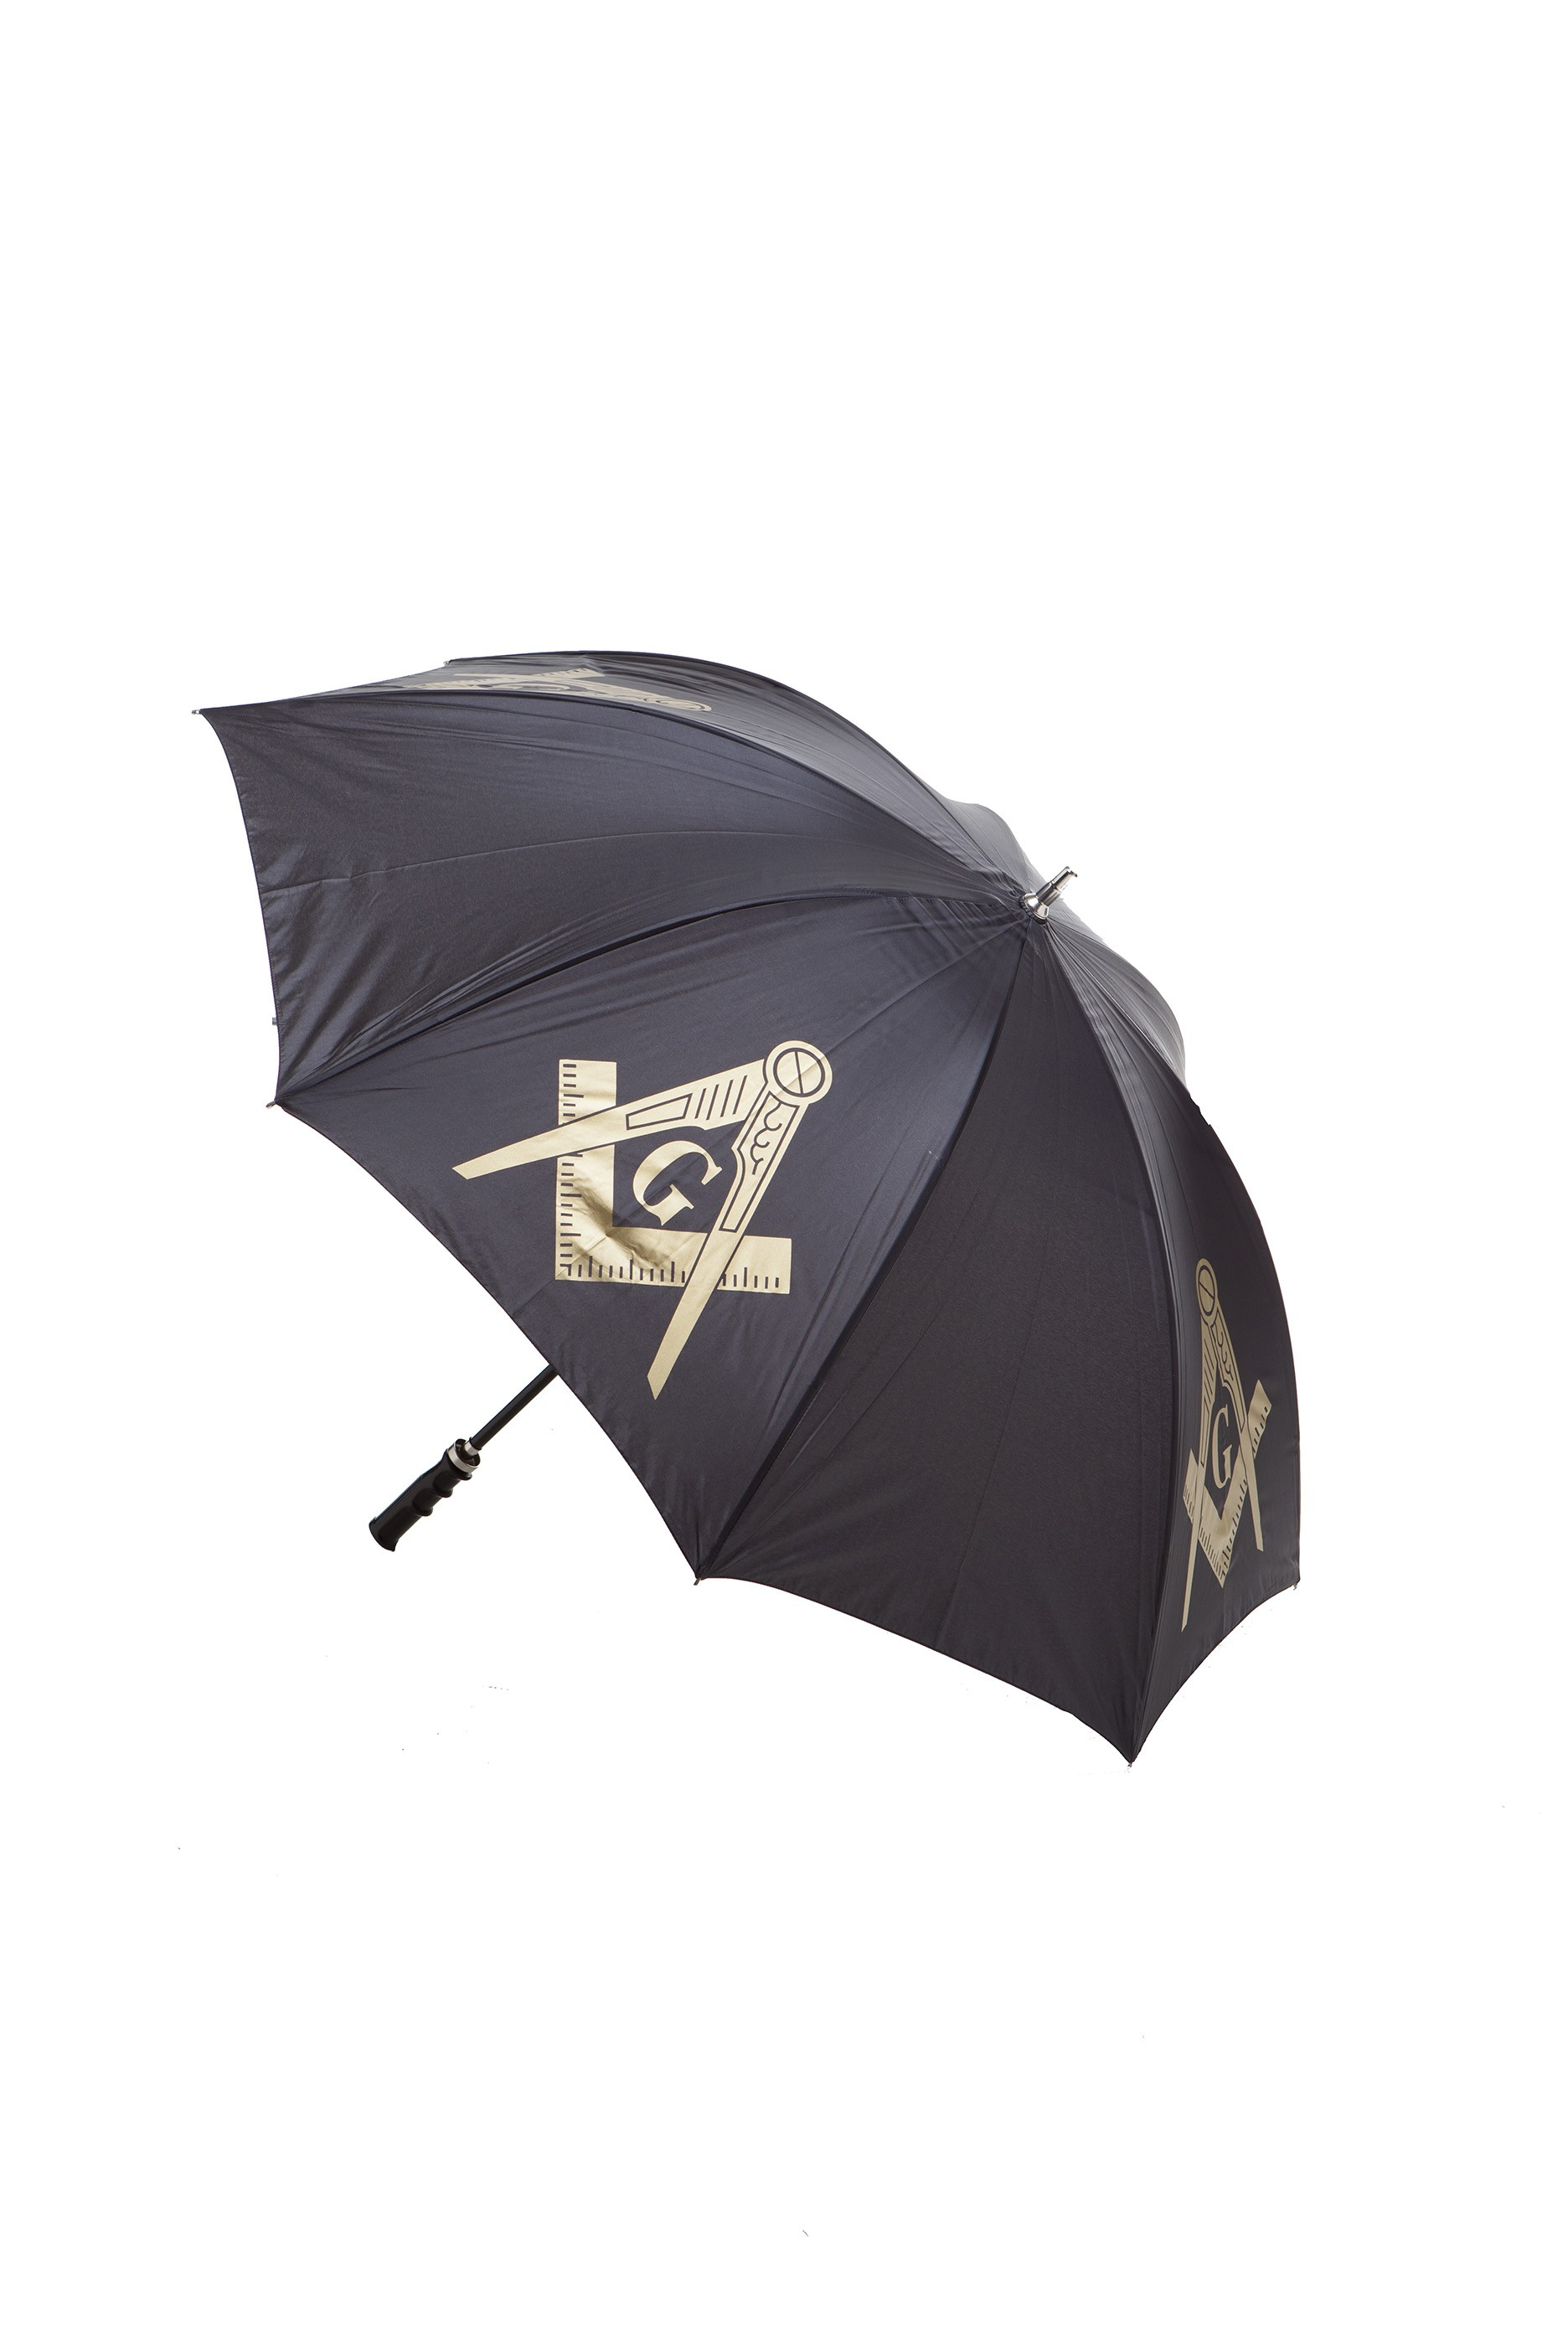 Masonic Gifts 30 inch Jumbo Umbrella Black